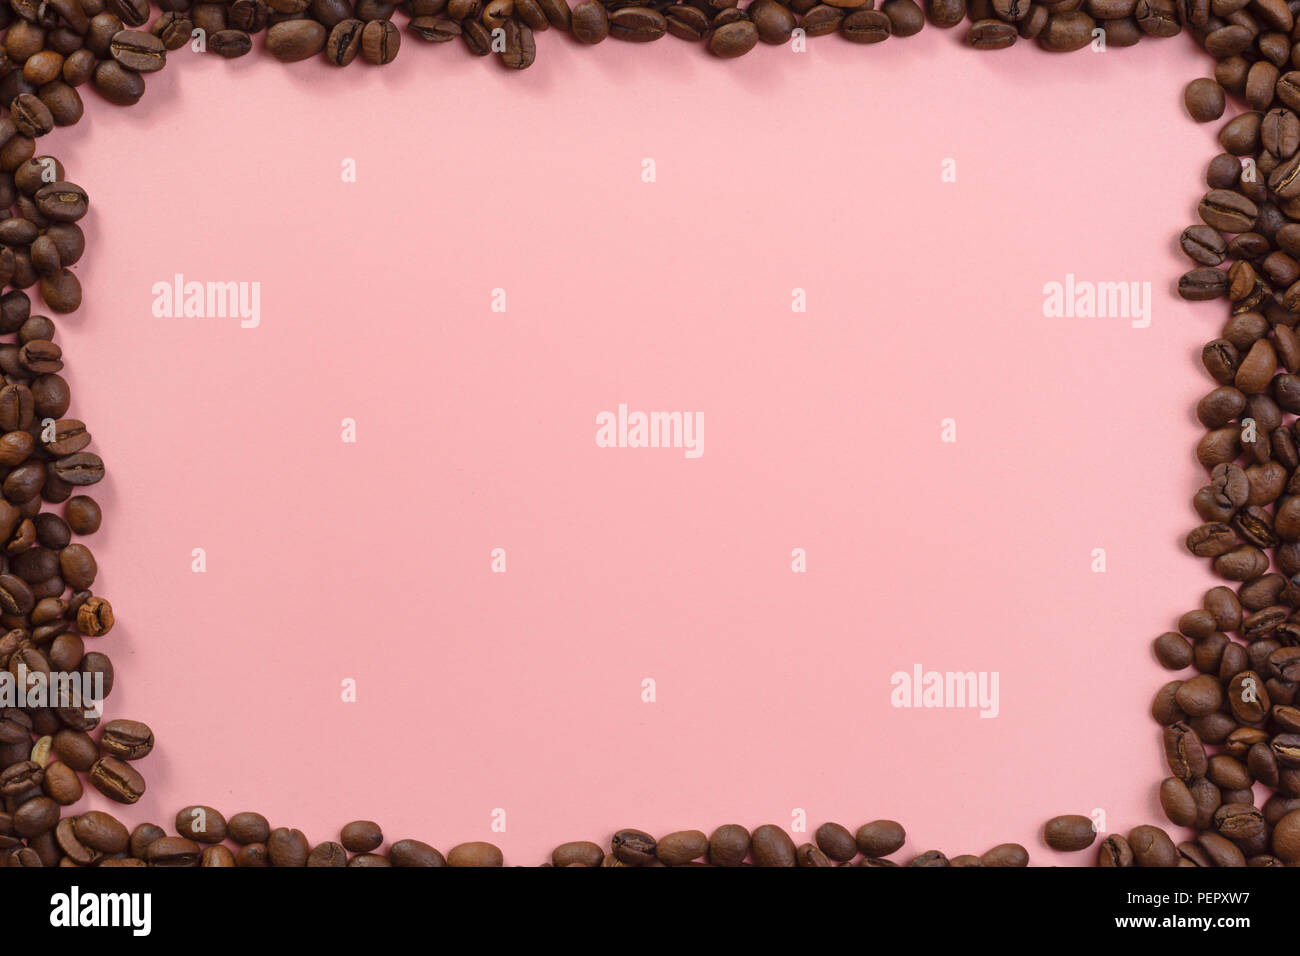 Lots of coffee beans around pastel background website textspace - Stock Image